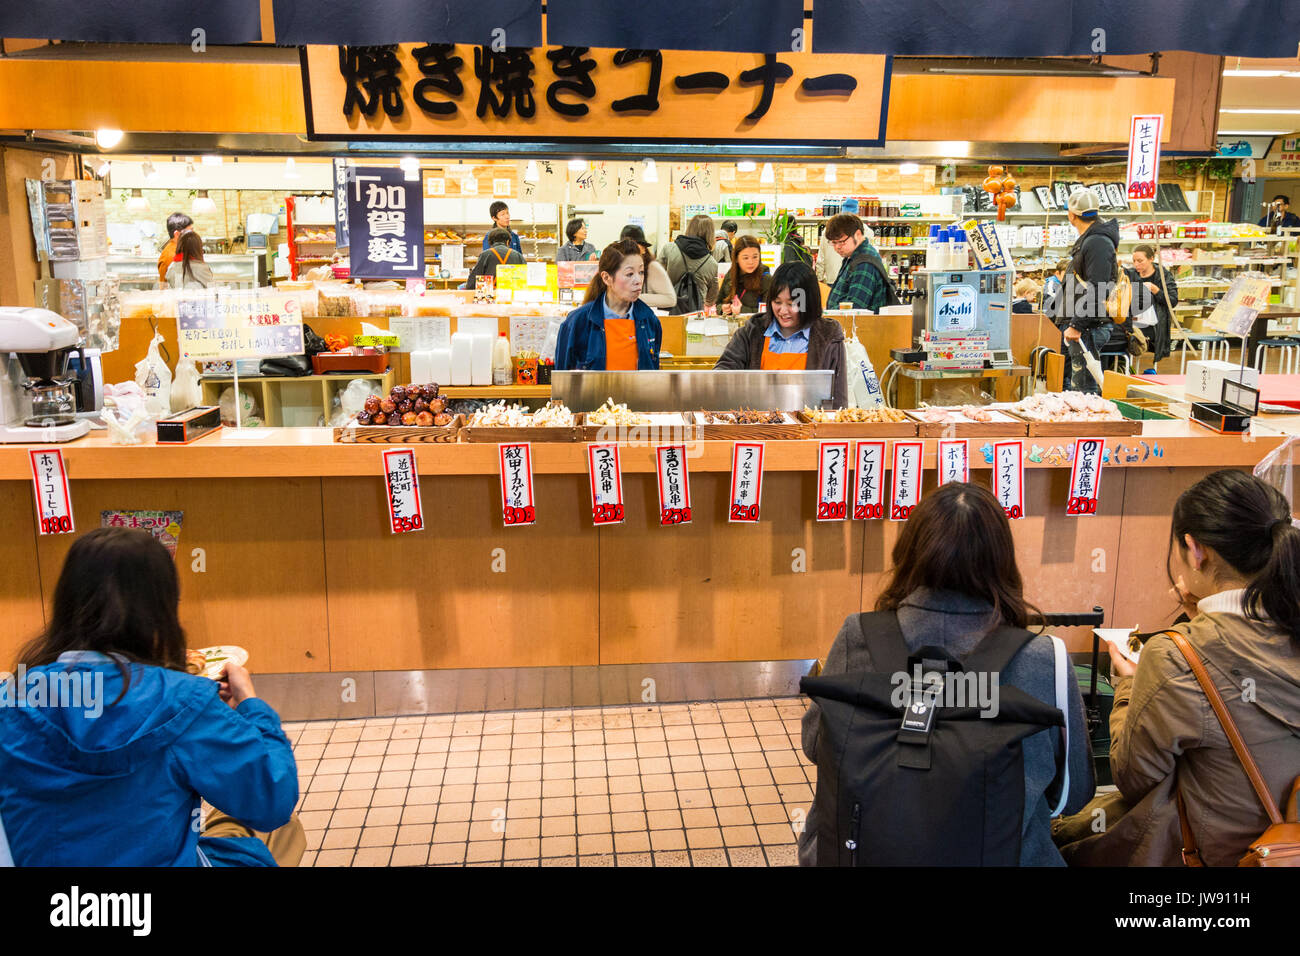 Fast food counter selling traditional Japanese snacks with menu tickets hanging from counter. Foreground, over the shoulder of customers eating. - Stock Image